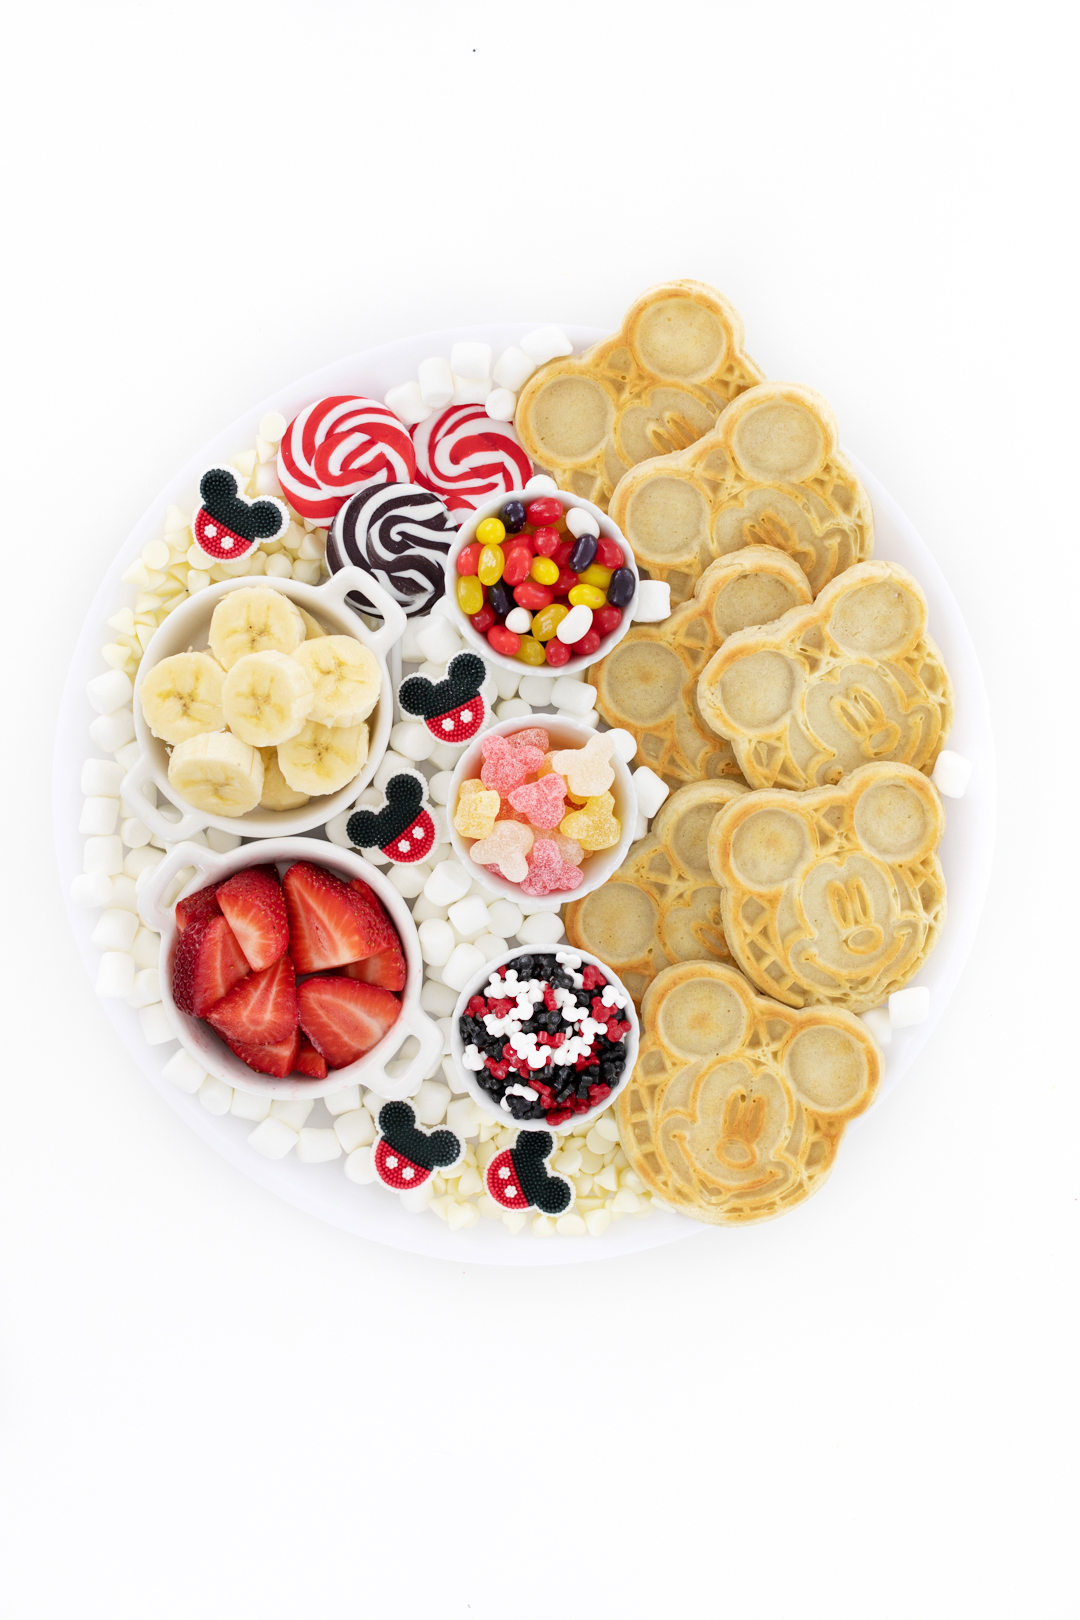 cute disney mickey mouse charcuterie board with waffles and waffle toppings including bananas and strawberries